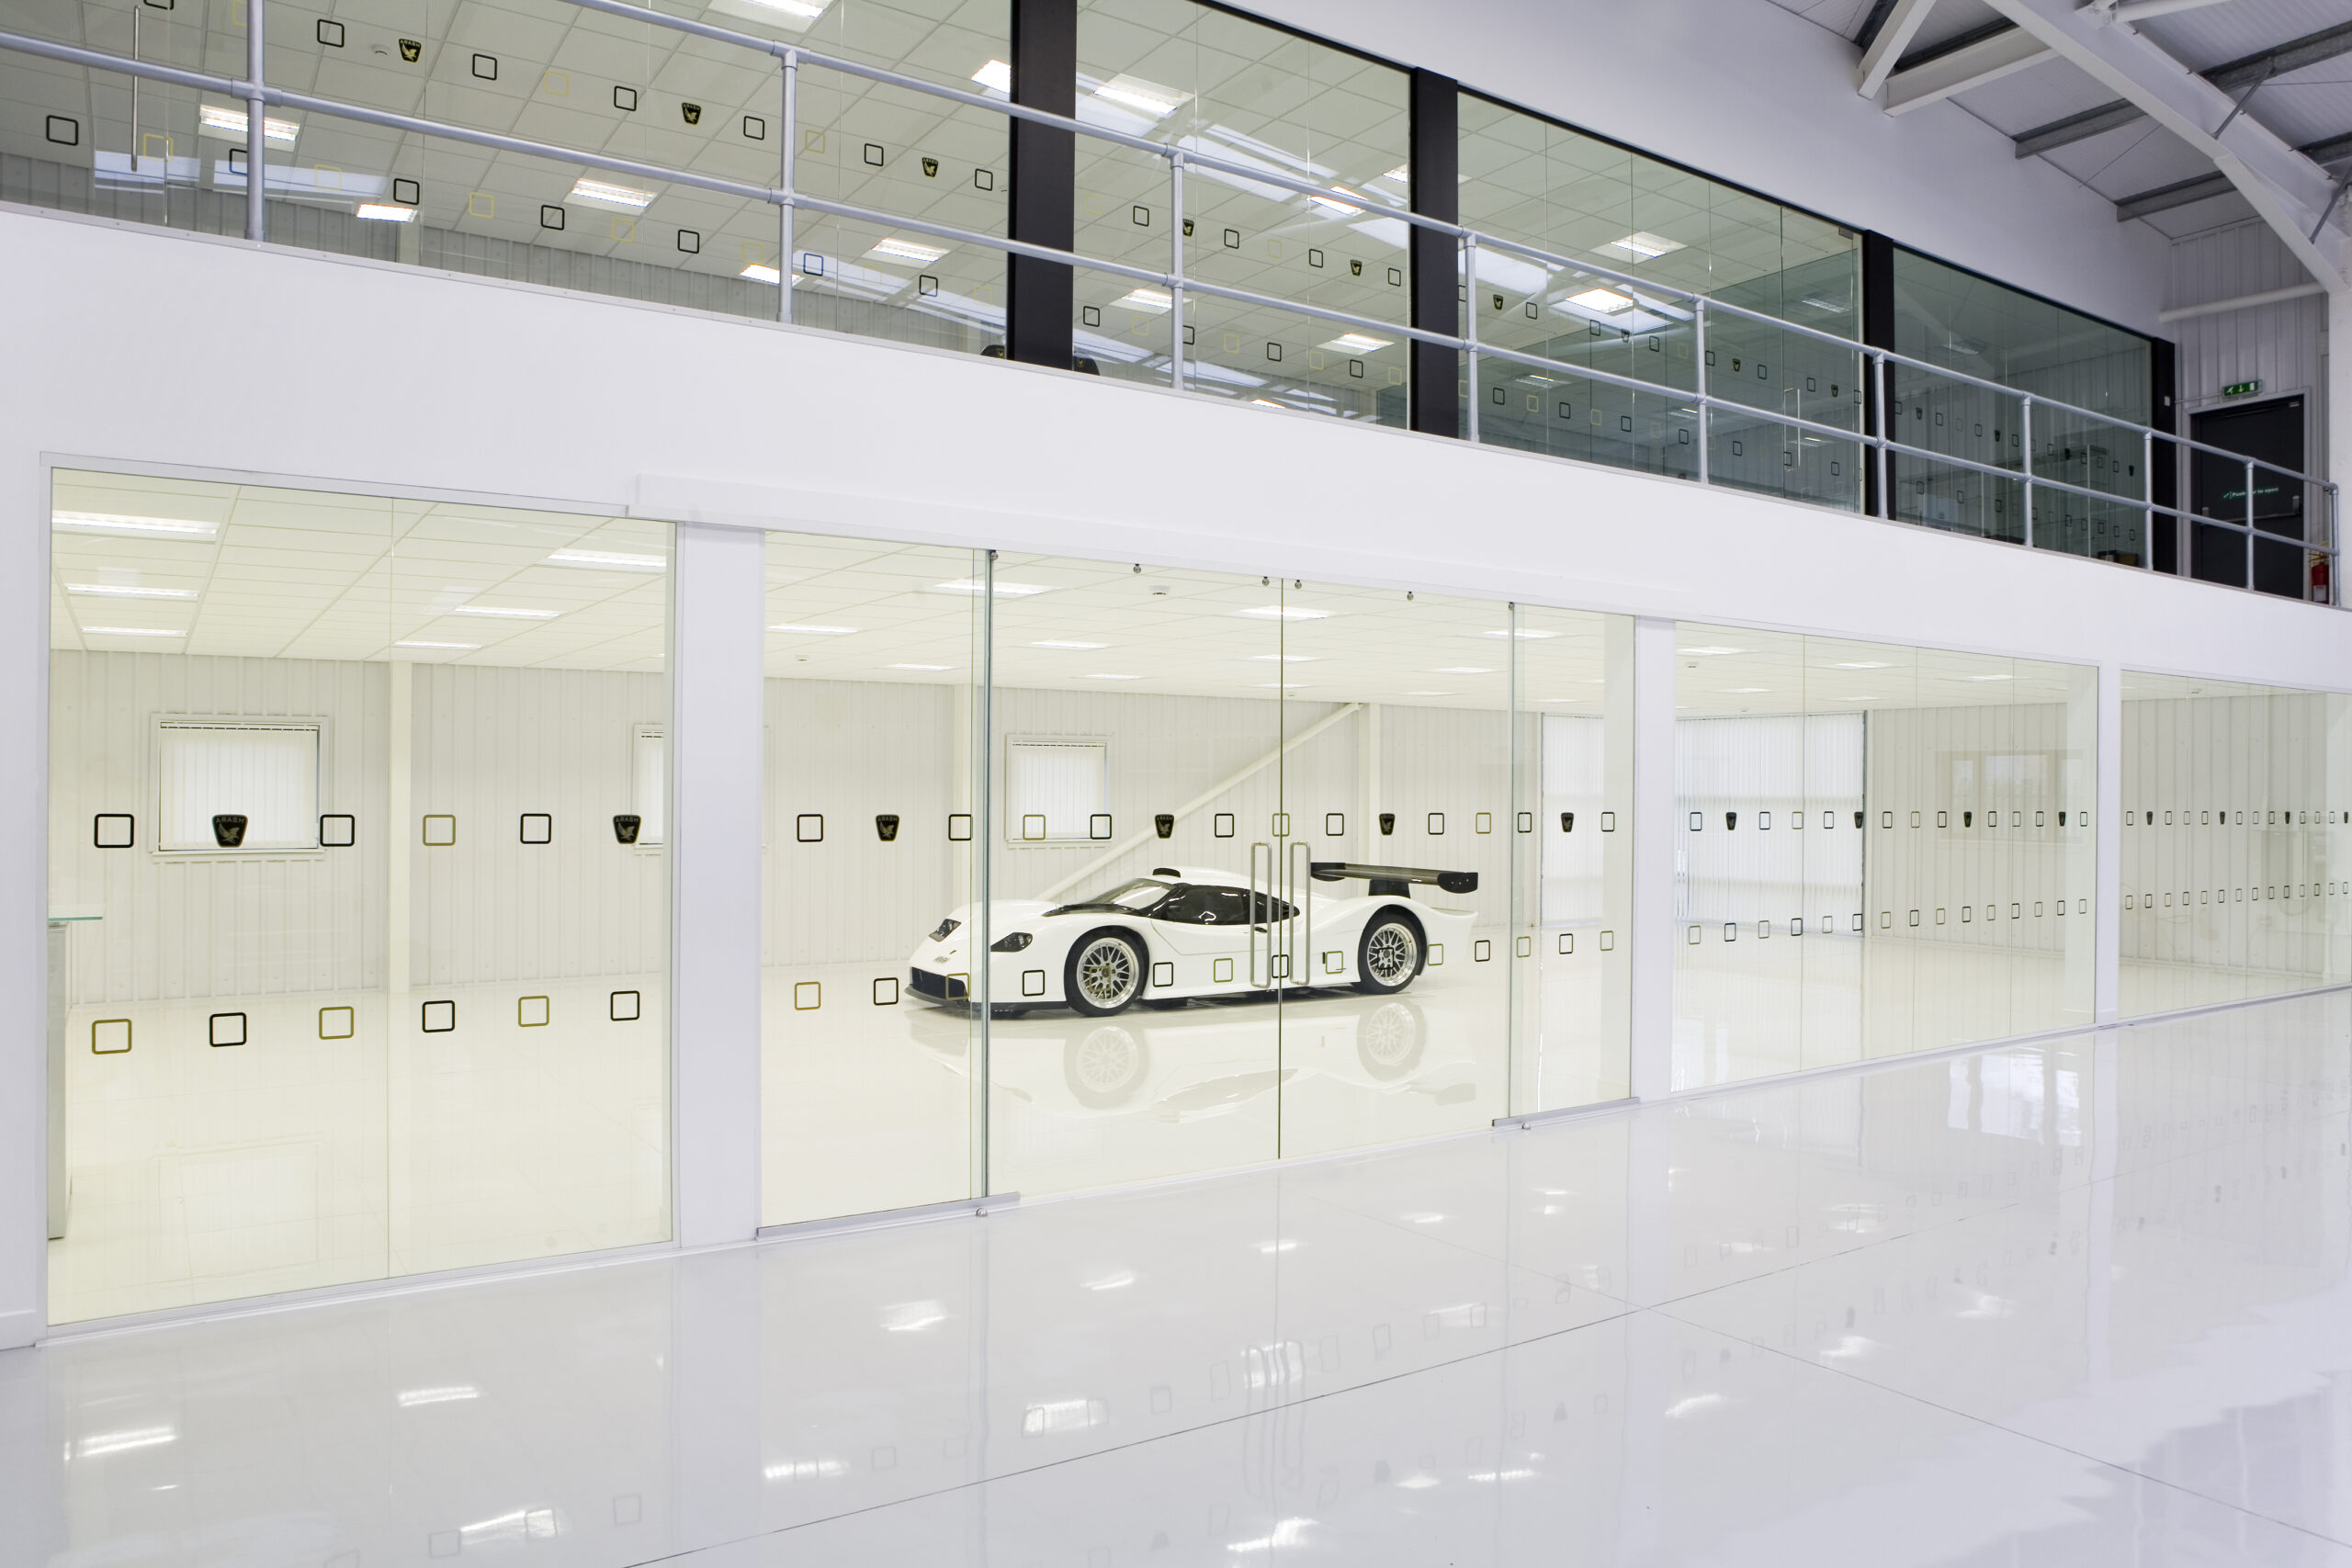 a white sports car behind at wall of glass with square patterned manifestations